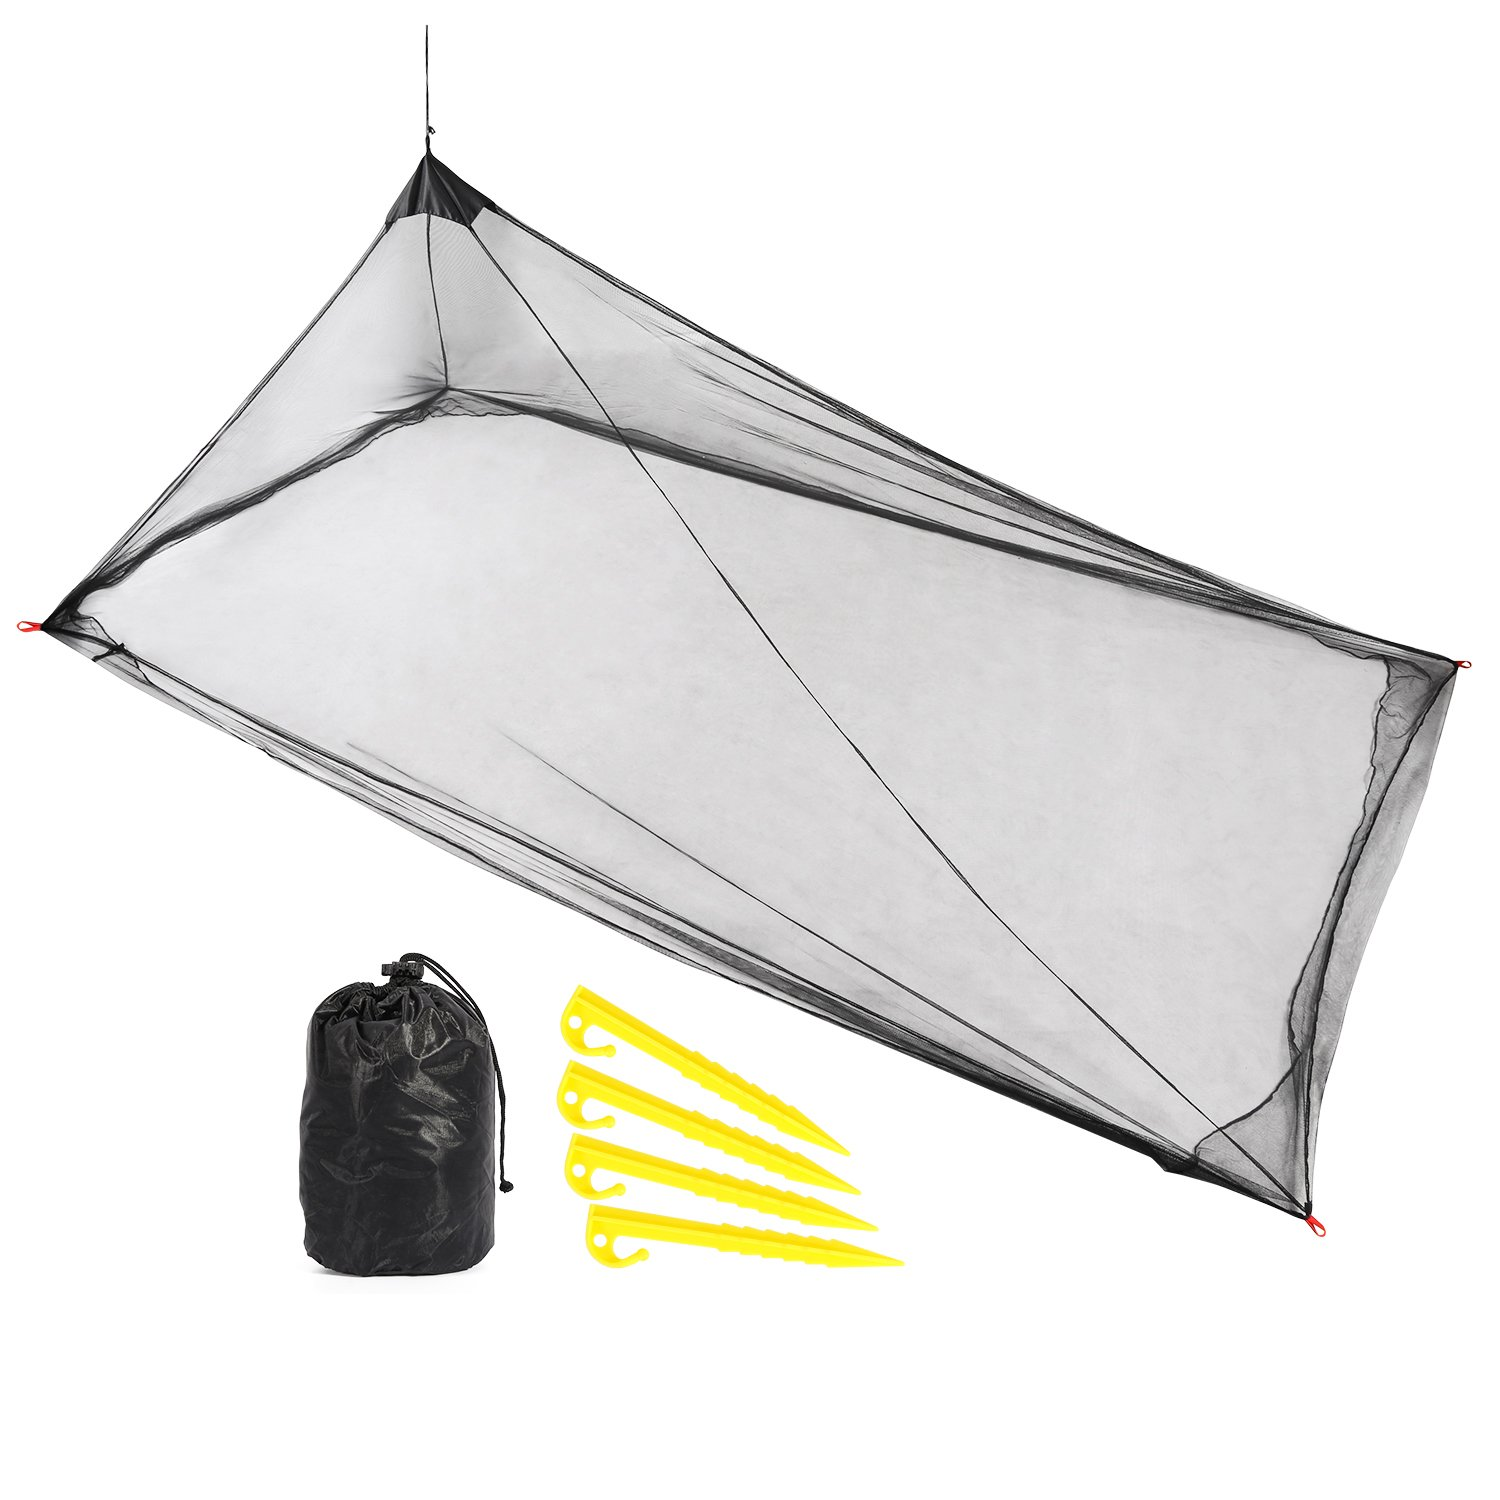 REDCAMP Single Camping Mosquito Net for Sleeping Bag or Bed, Compact and Lightweight Hanging Triangle Pyramid Net, Black by REDCAMP